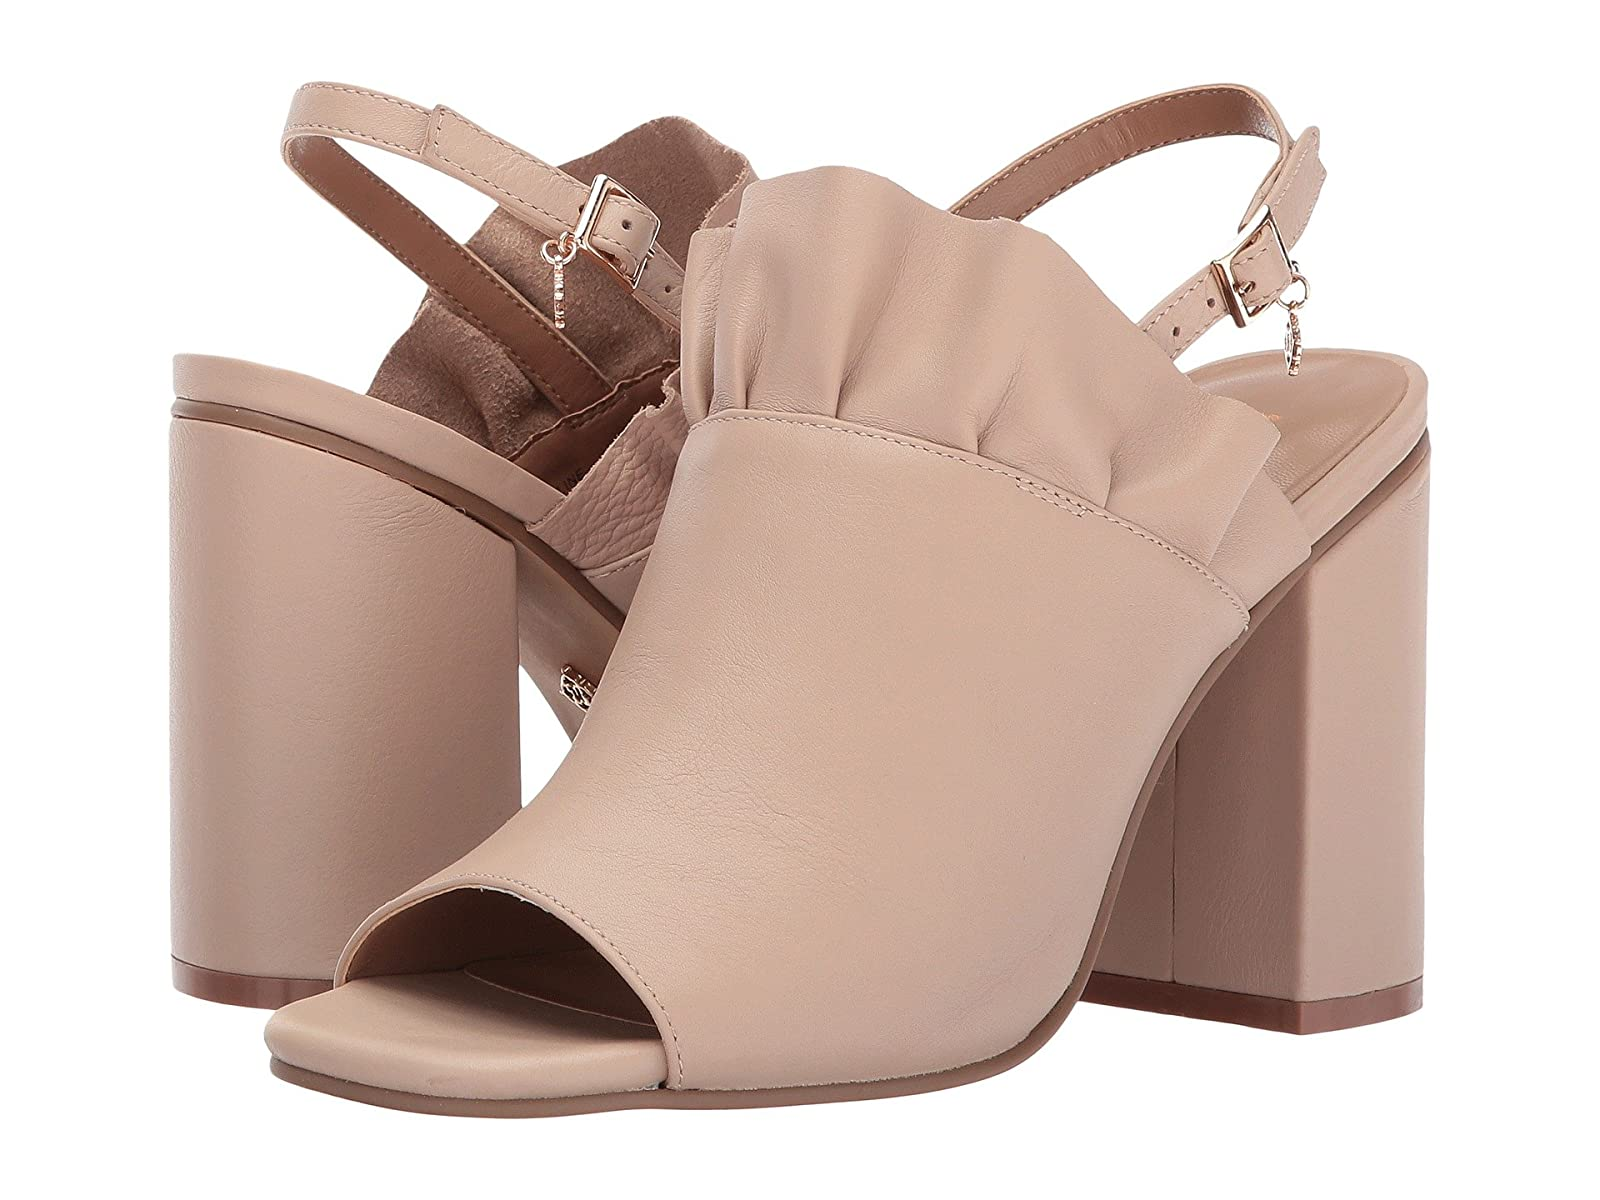 Nanette nanette lepore MadelineCheap and distinctive eye-catching shoes